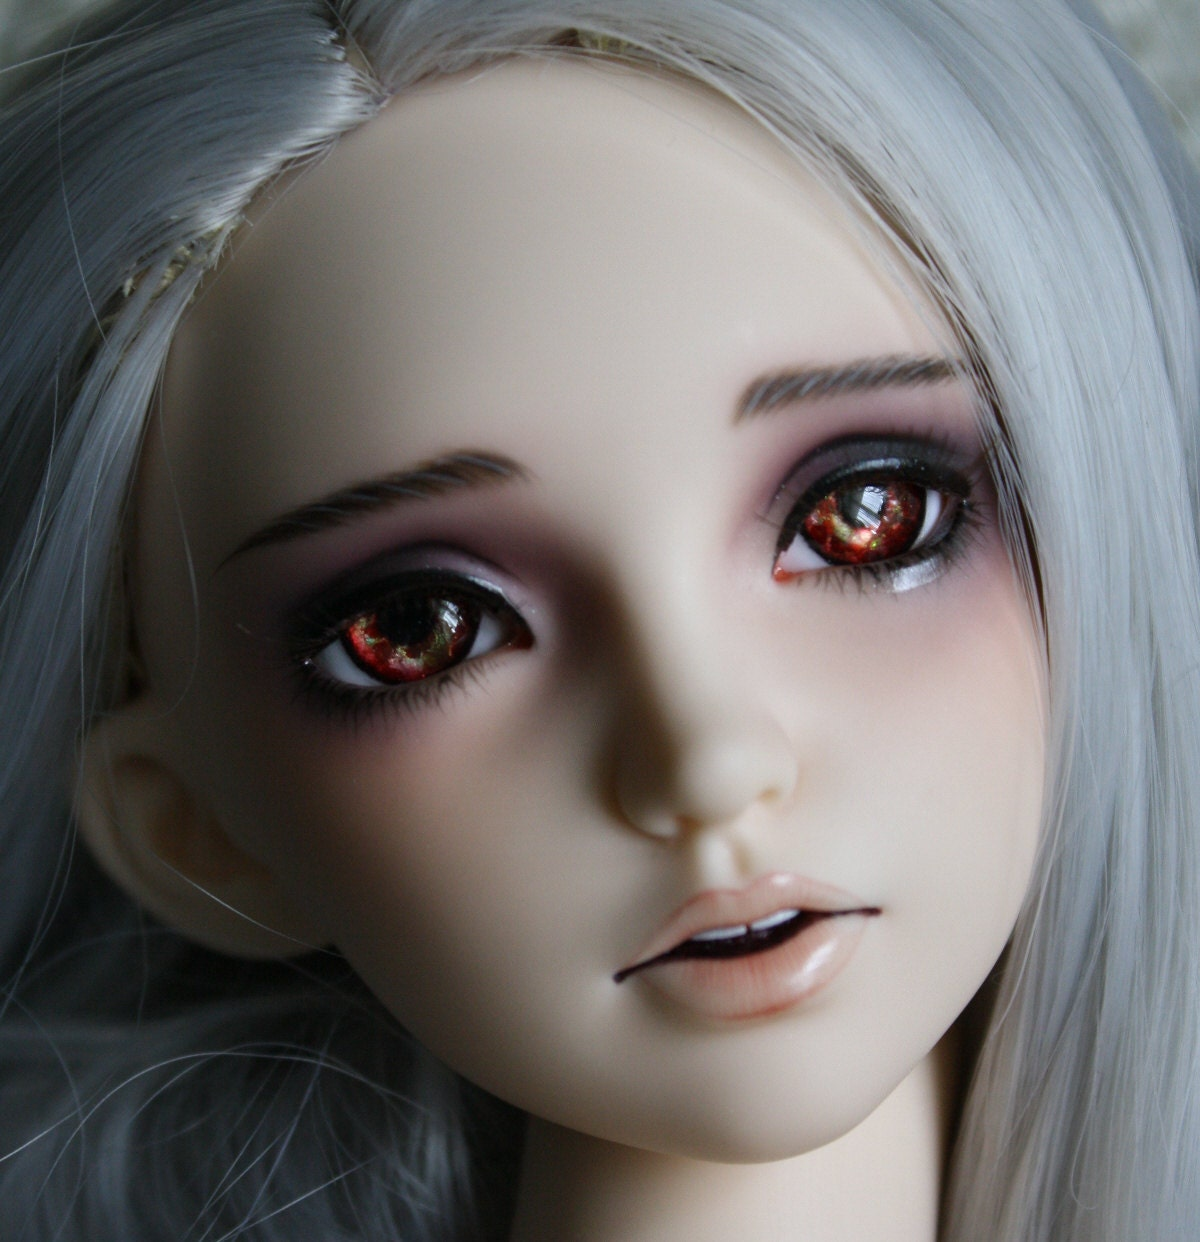 BJD eyes Doll eyes Hand made available in 12141618202224mm Brandy Apple made to order